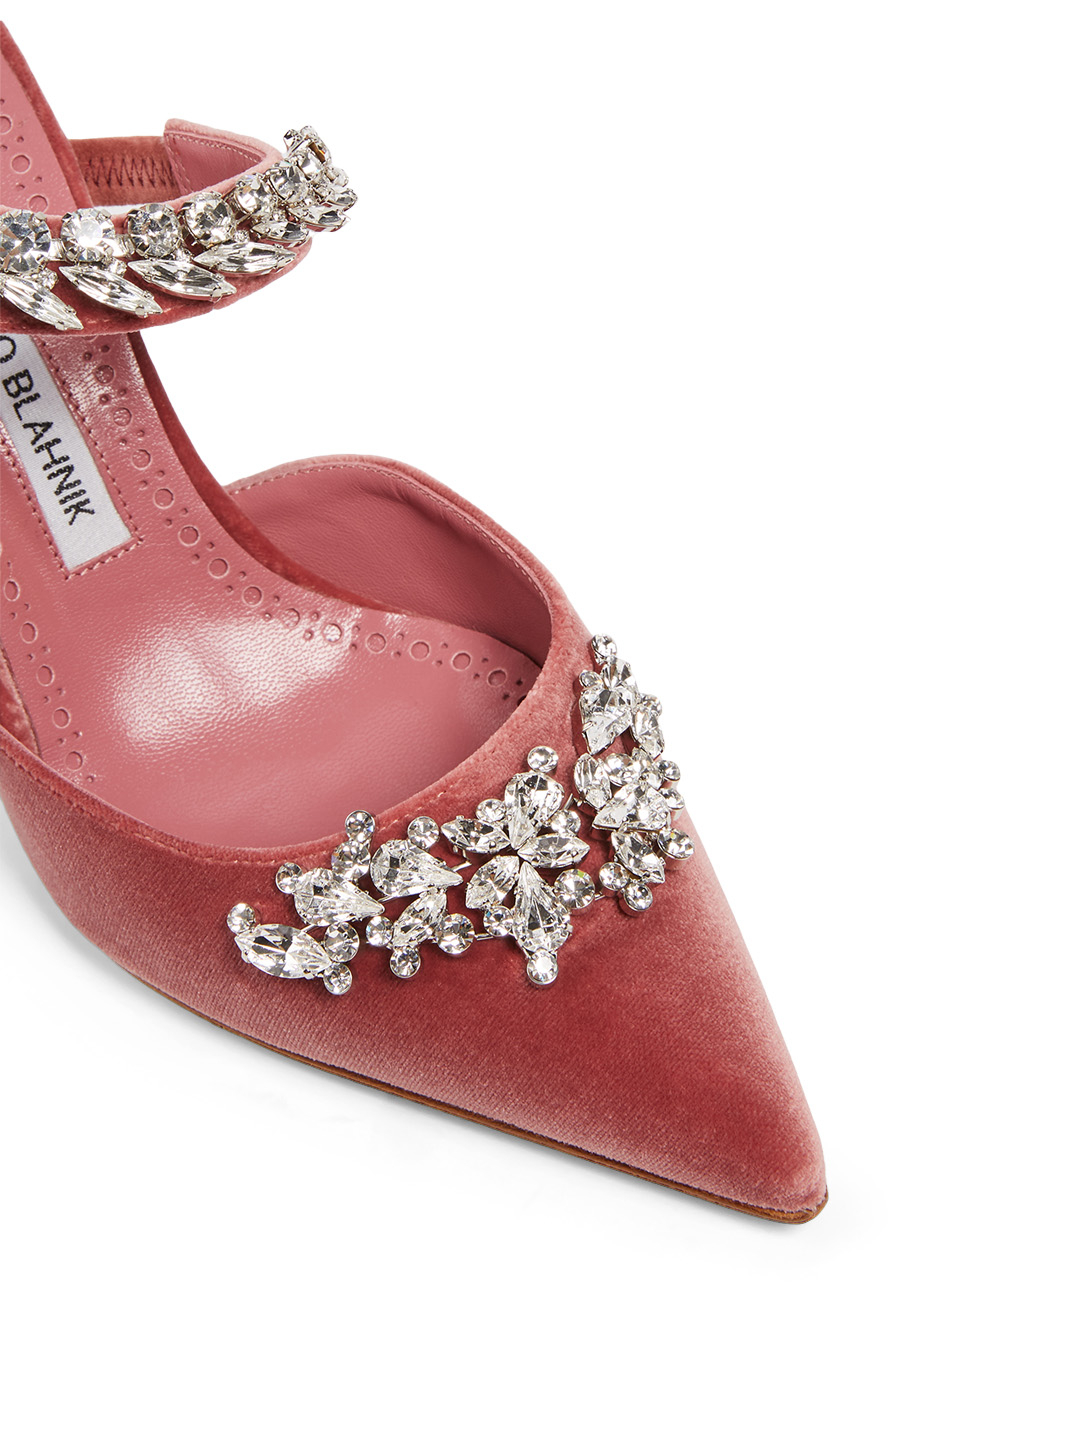 MANOLO BLAHNIK Lurum Velvet Mules With Crystal Embellishment Women's Pink